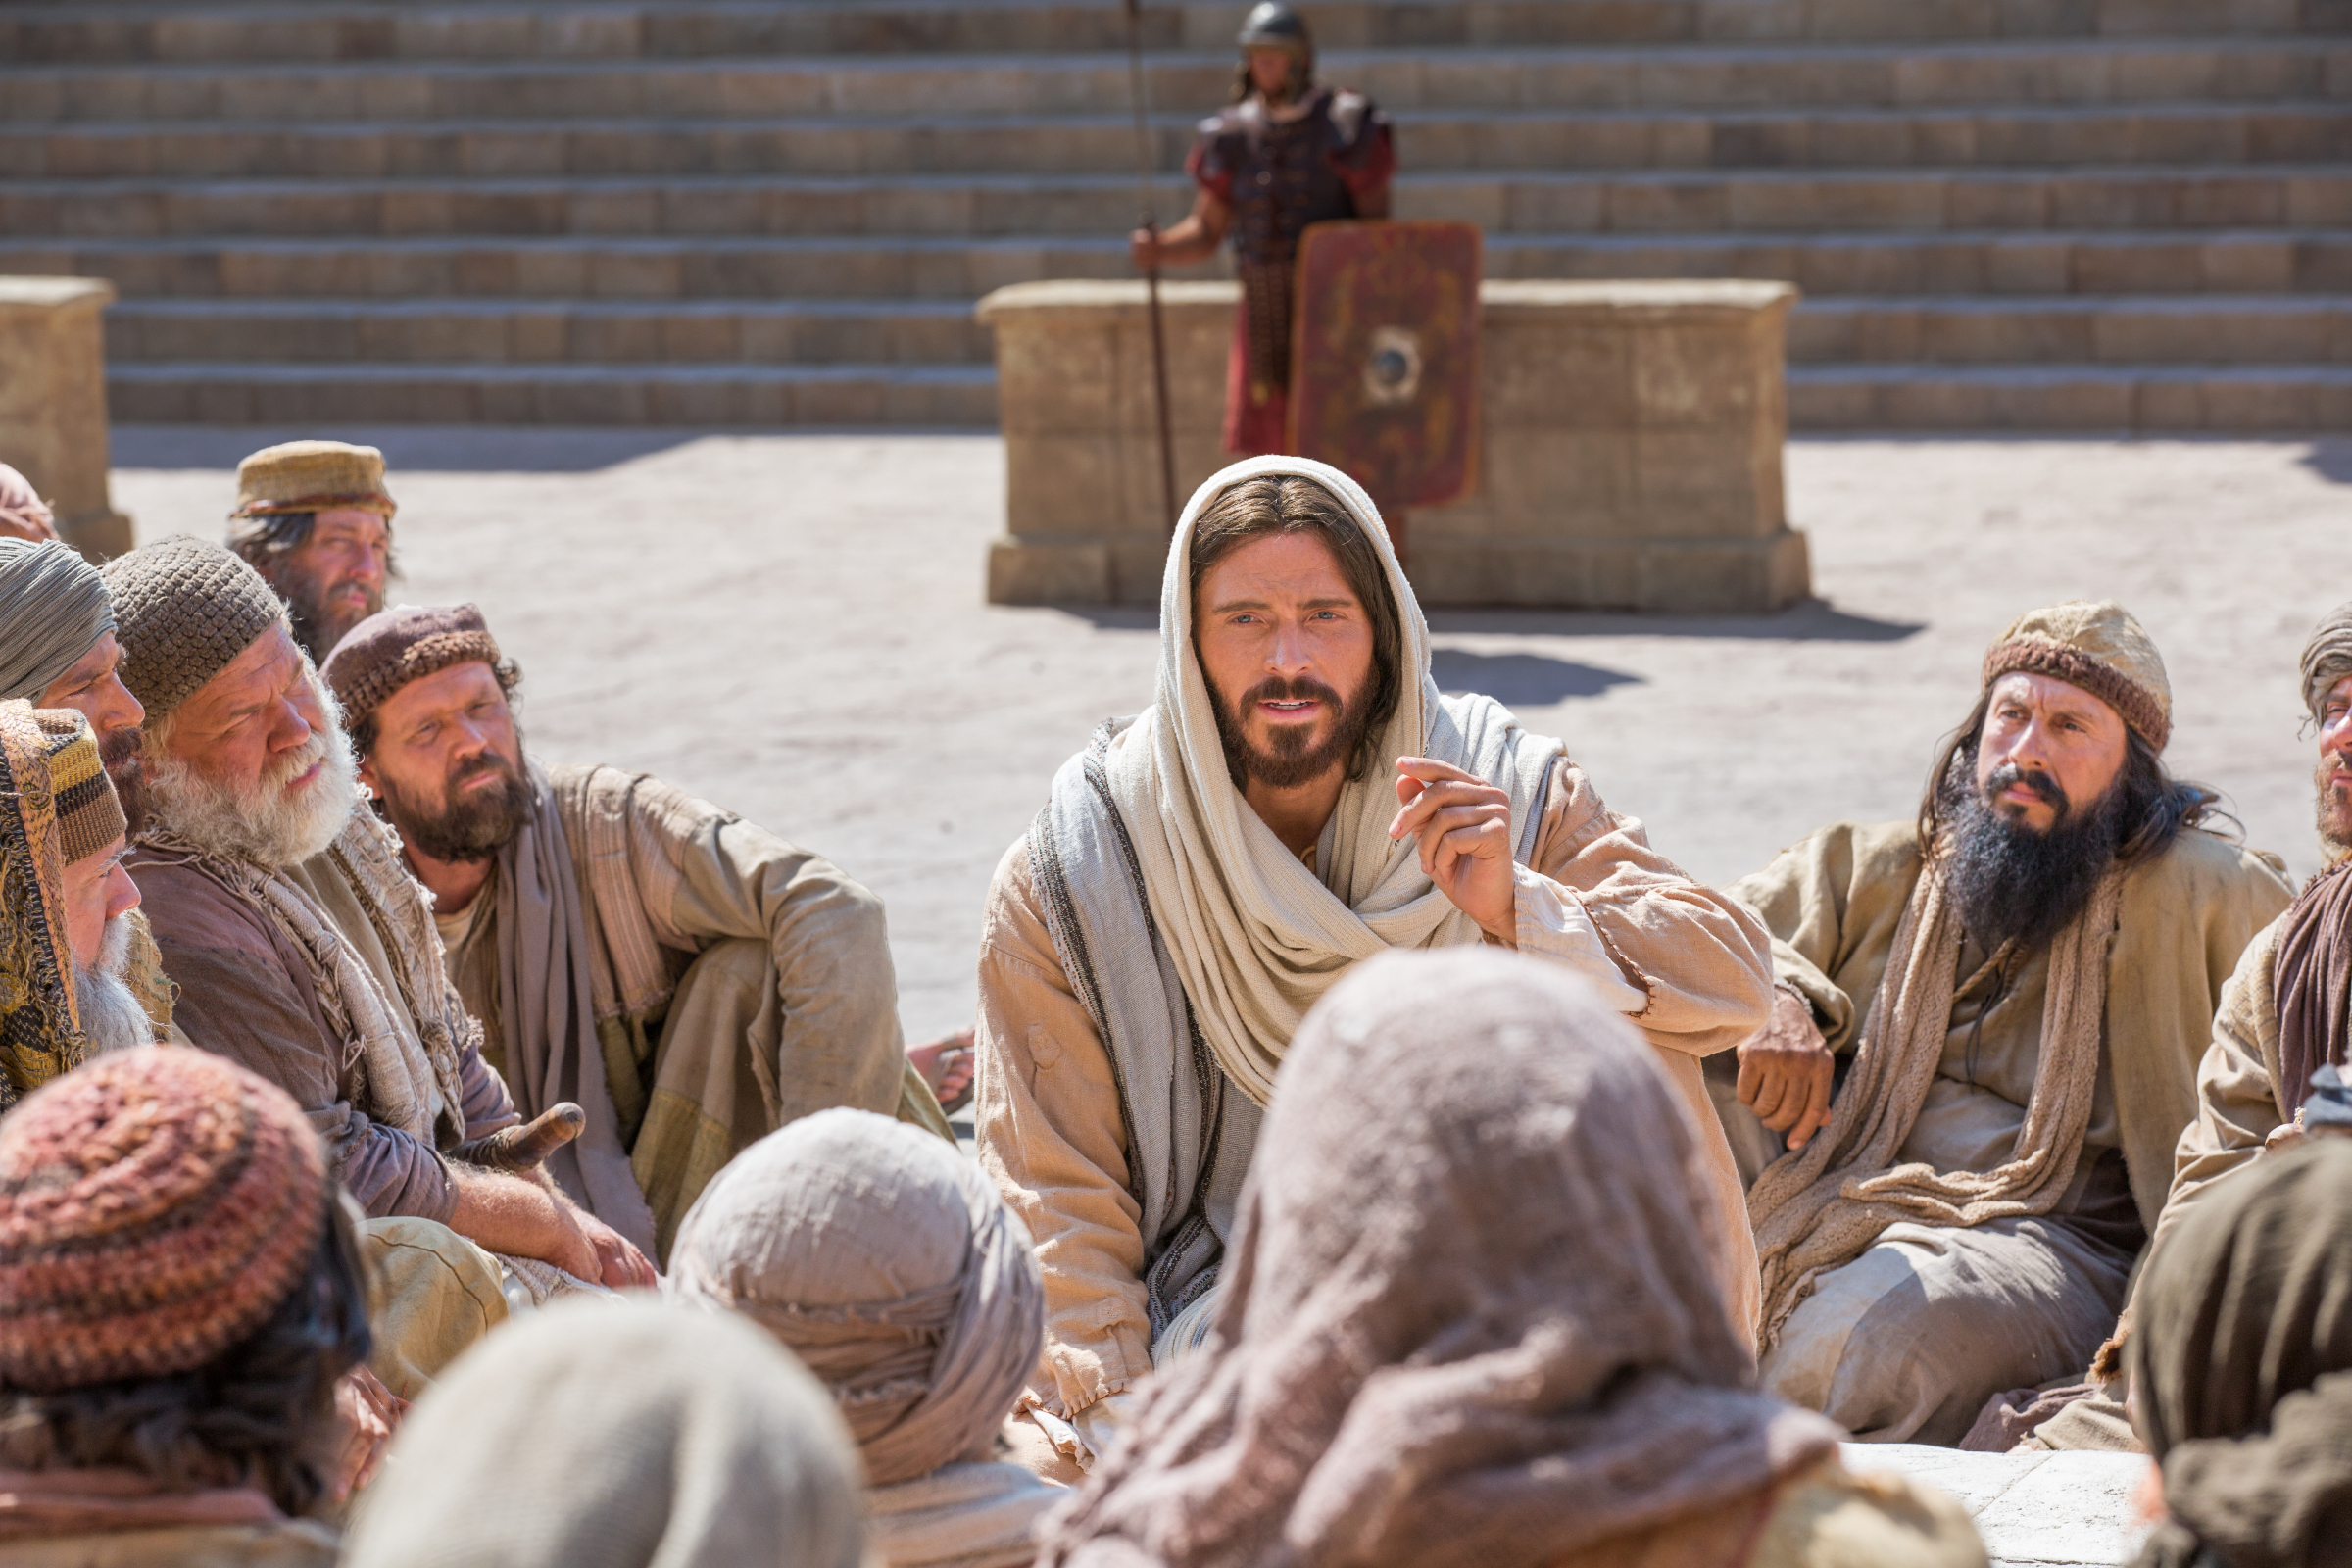 Jesus Christ tells a group of people that he is the Good Shepherd in this image from the Bible Video.